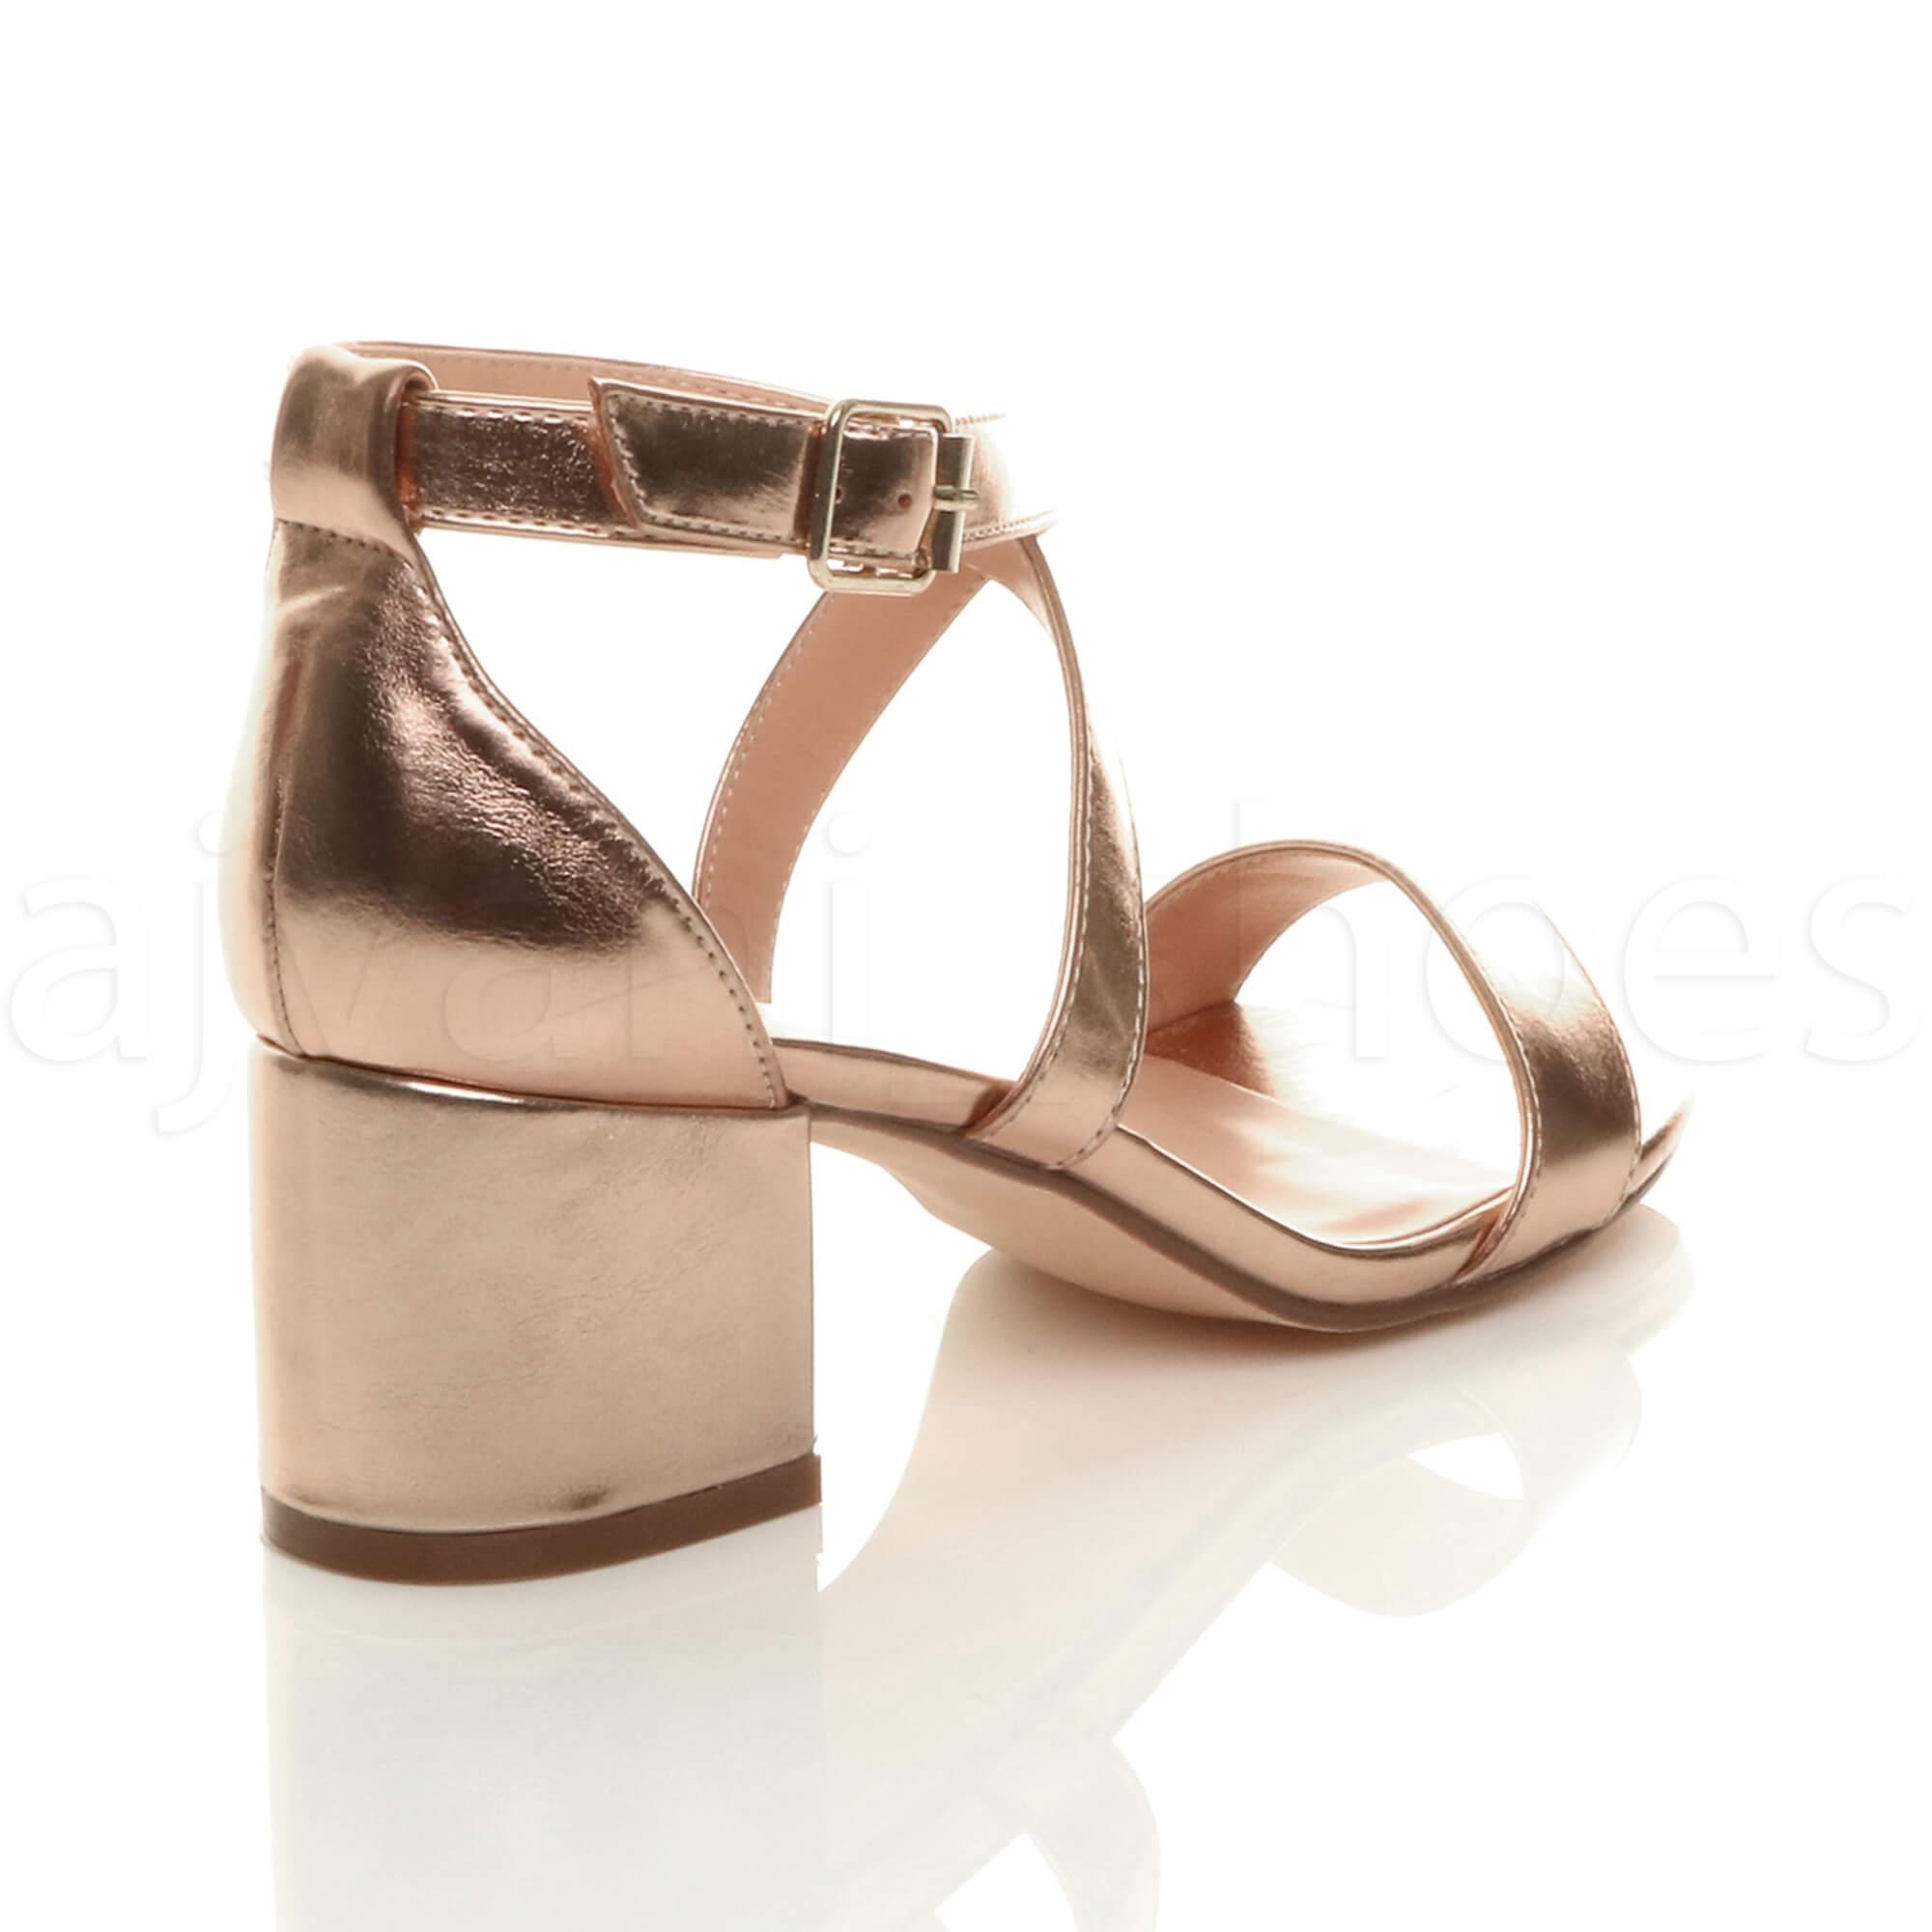 WOMENS-LADIES-MID-LOW-BLOCK-HEEL-CROSS-STRAPS-PARTY-STRAPPY-SANDALS-SHOES-SIZE thumbnail 72